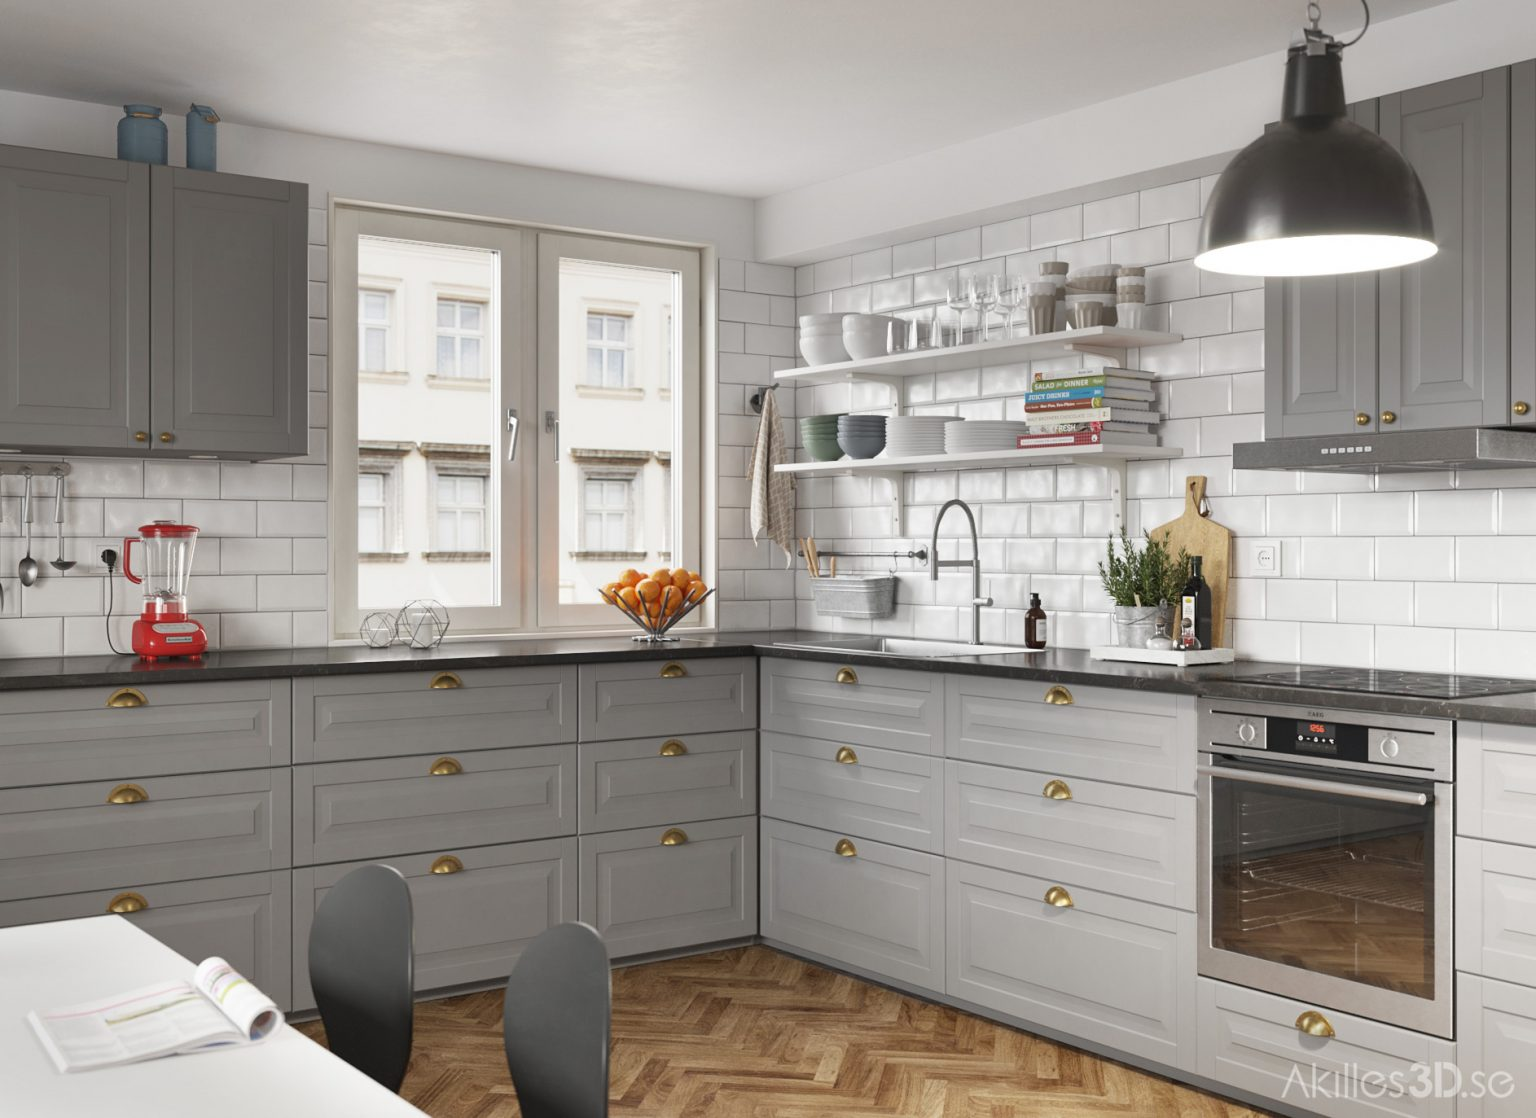 Kitchen realistic 3D visualization interior architecture CGI high-end top quality scandinavian illustration photorealistic